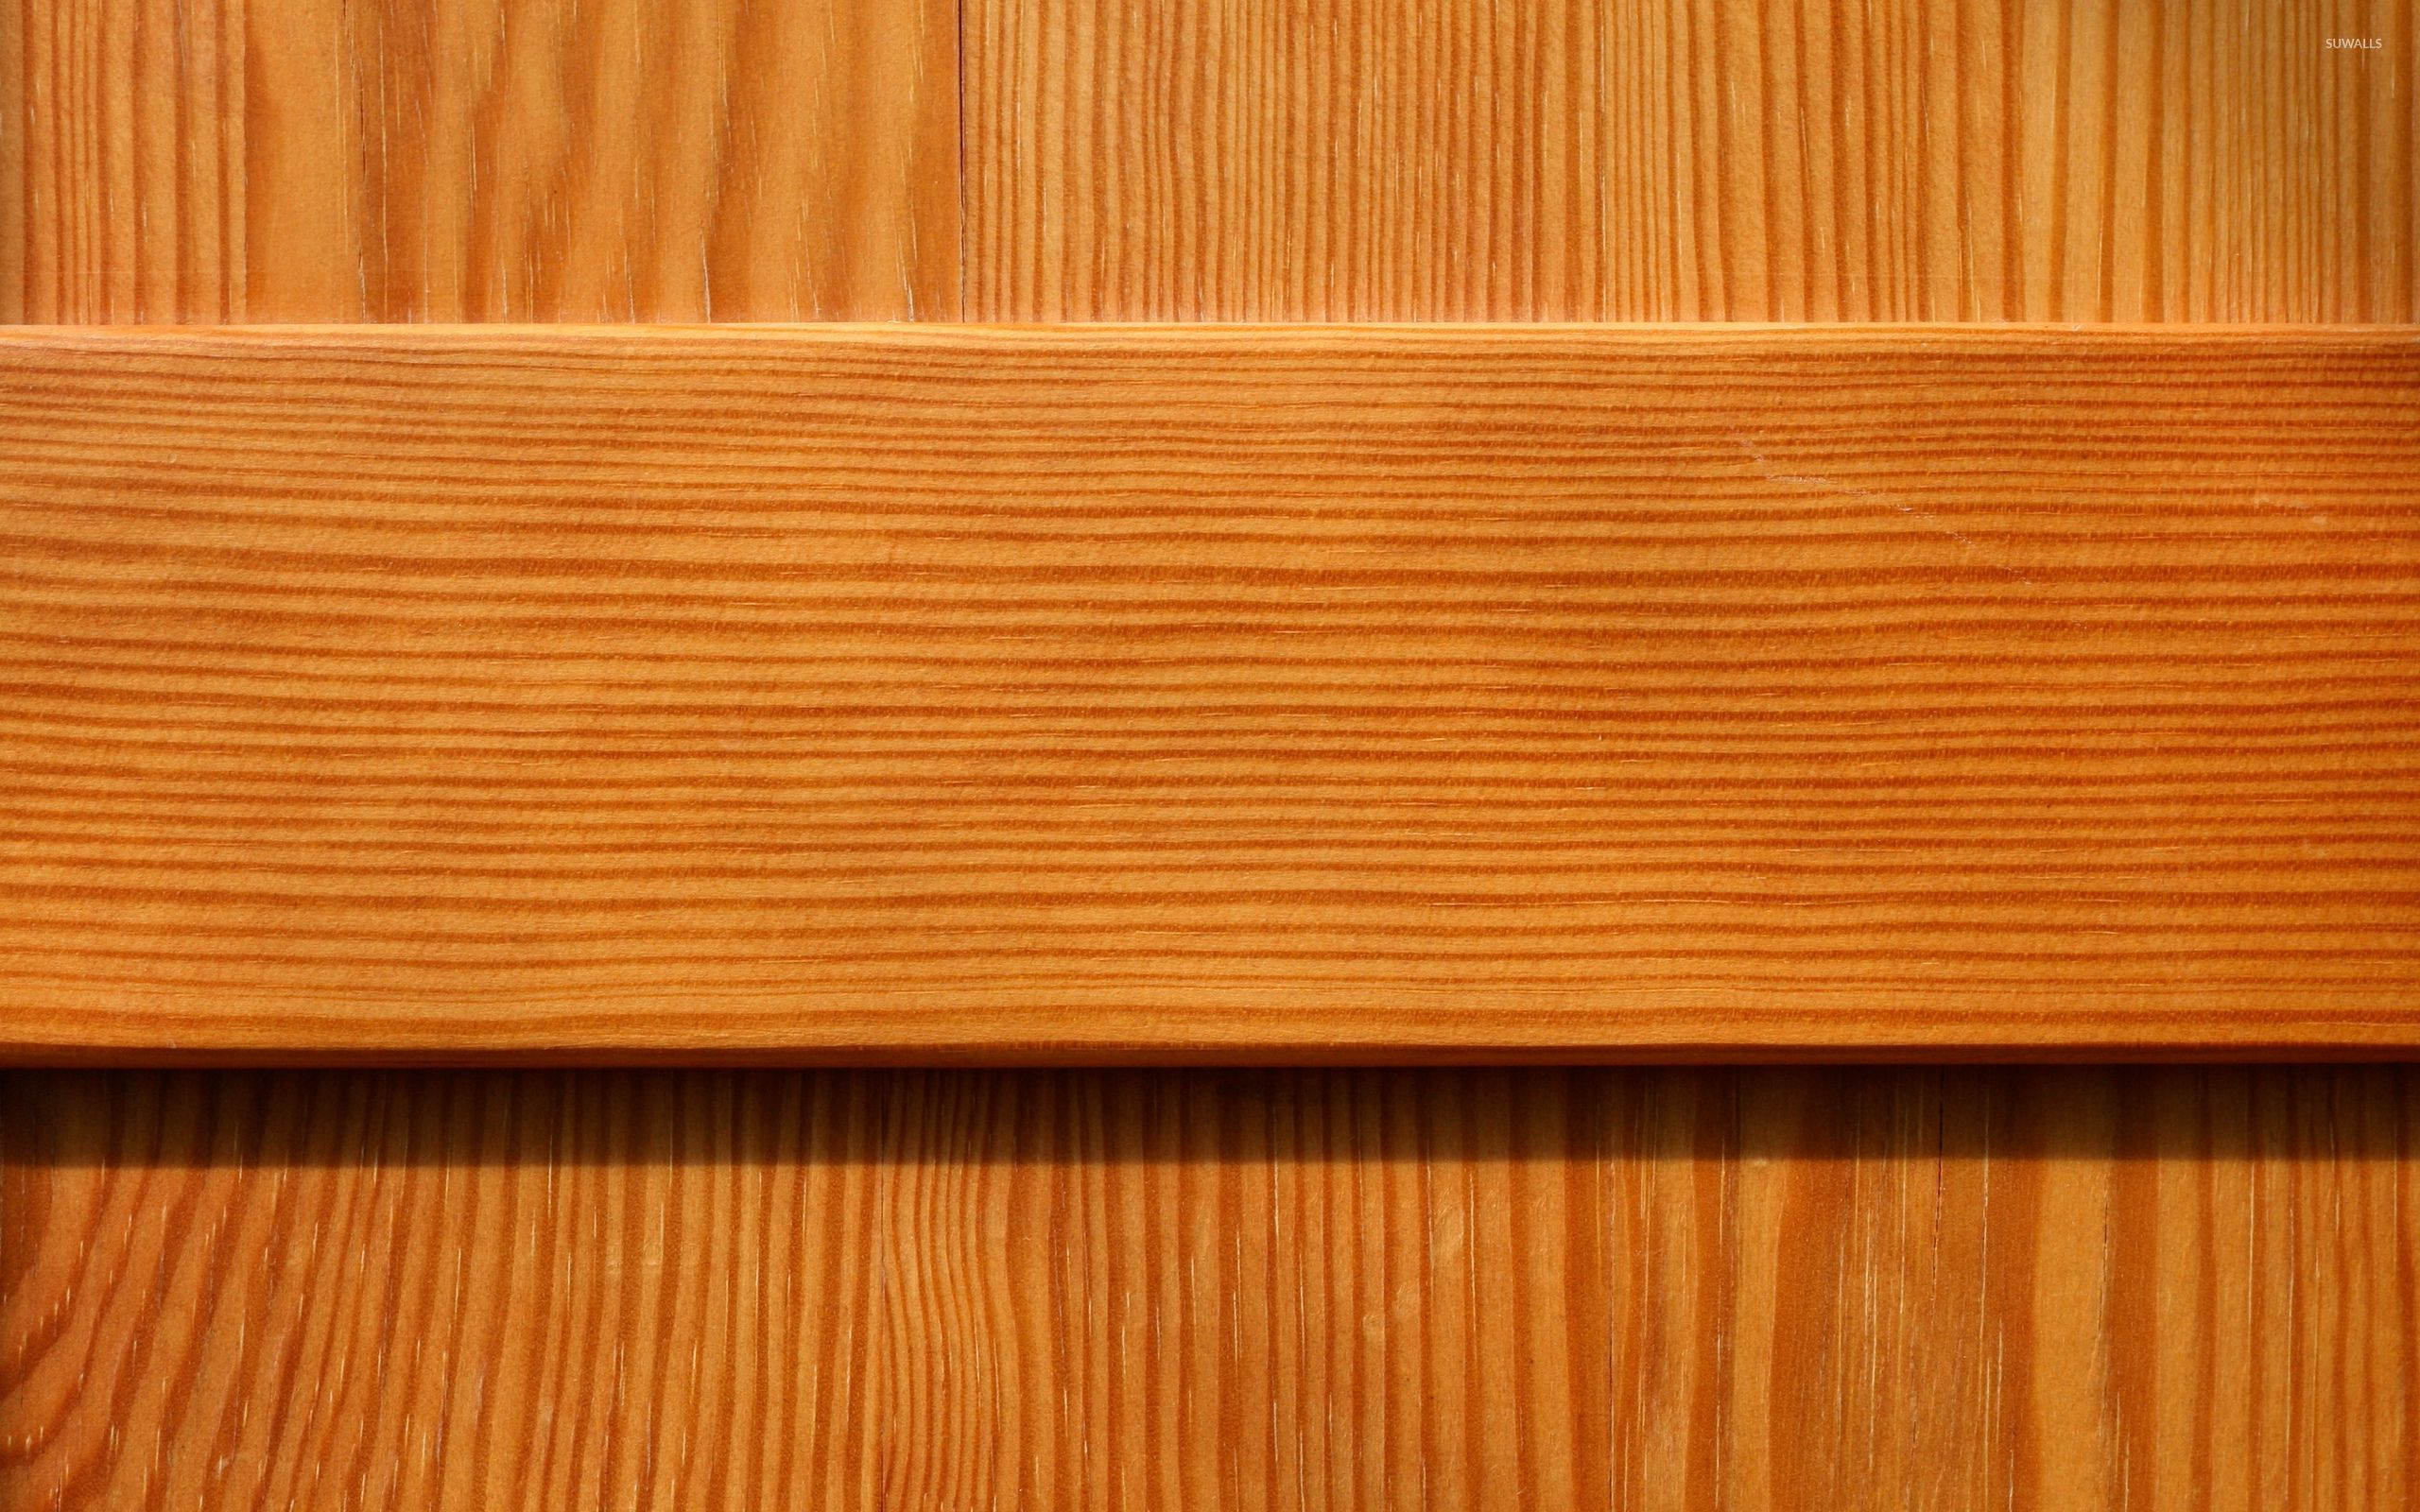 Wooden panels wallpaper - Photography wallpapers - #54427